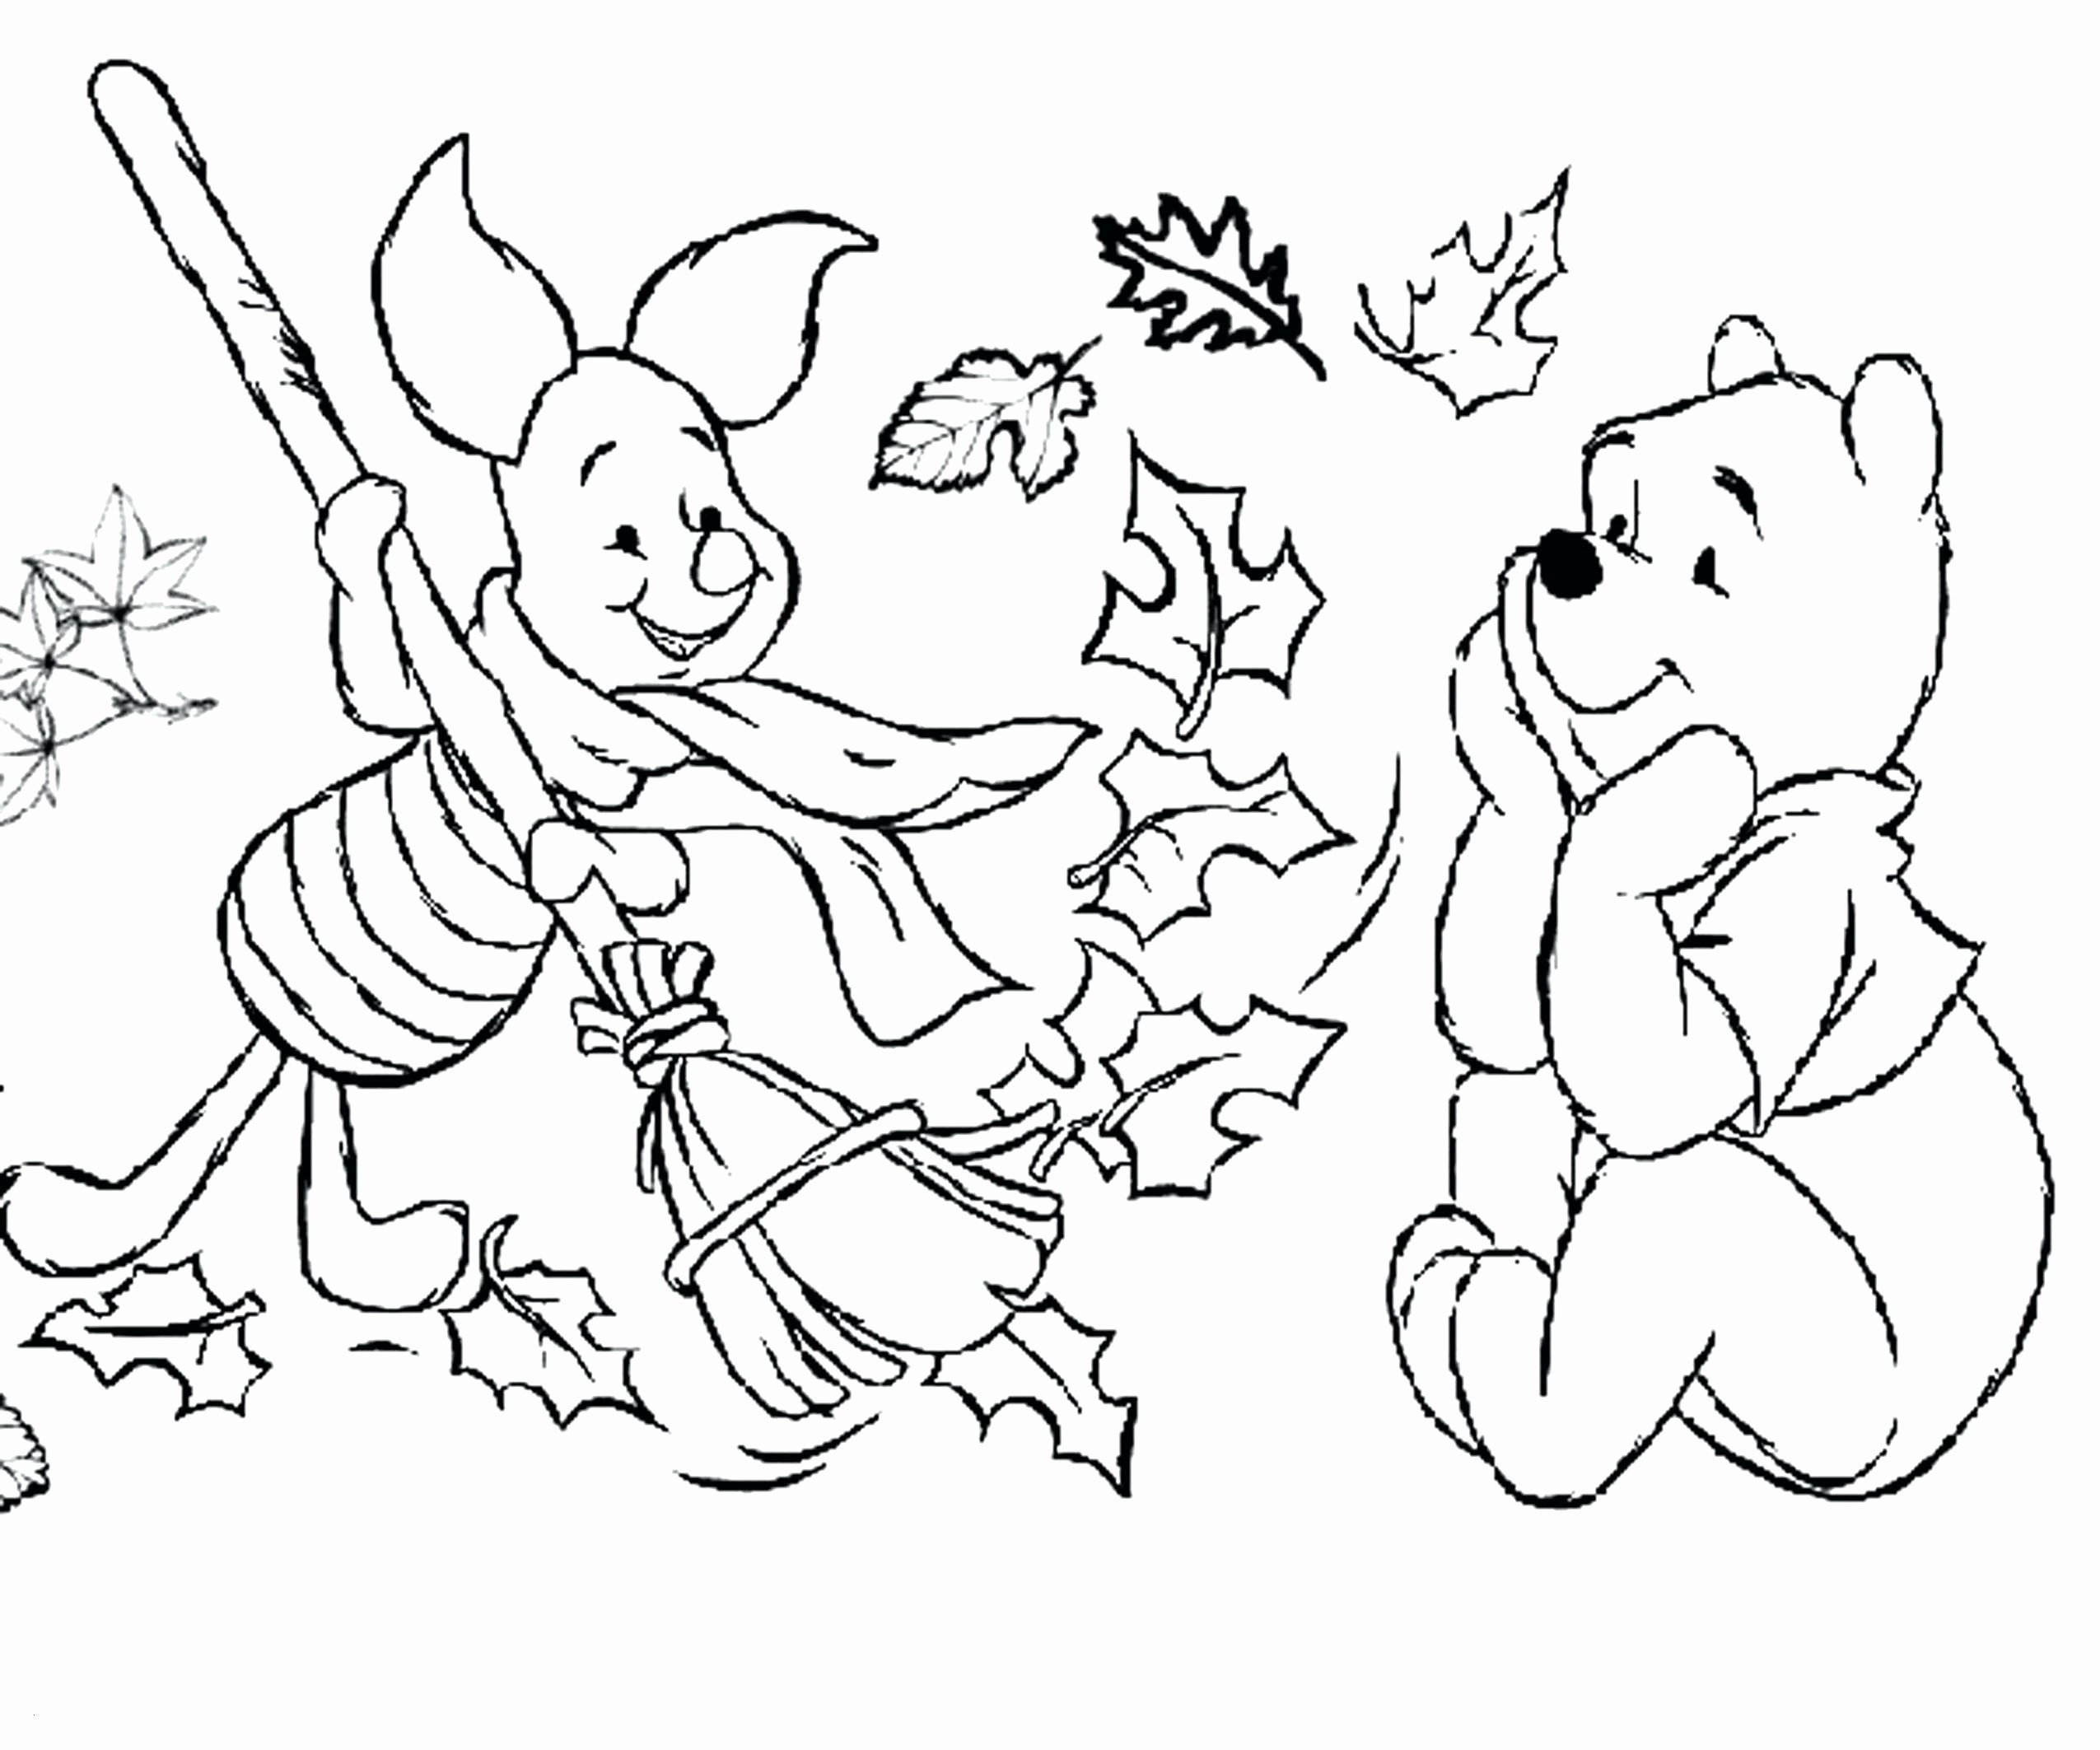 Mia and Me Coloring Pages Genial All About Me Coloring Pages Beautiful Image Puzzles Printable Best Bild